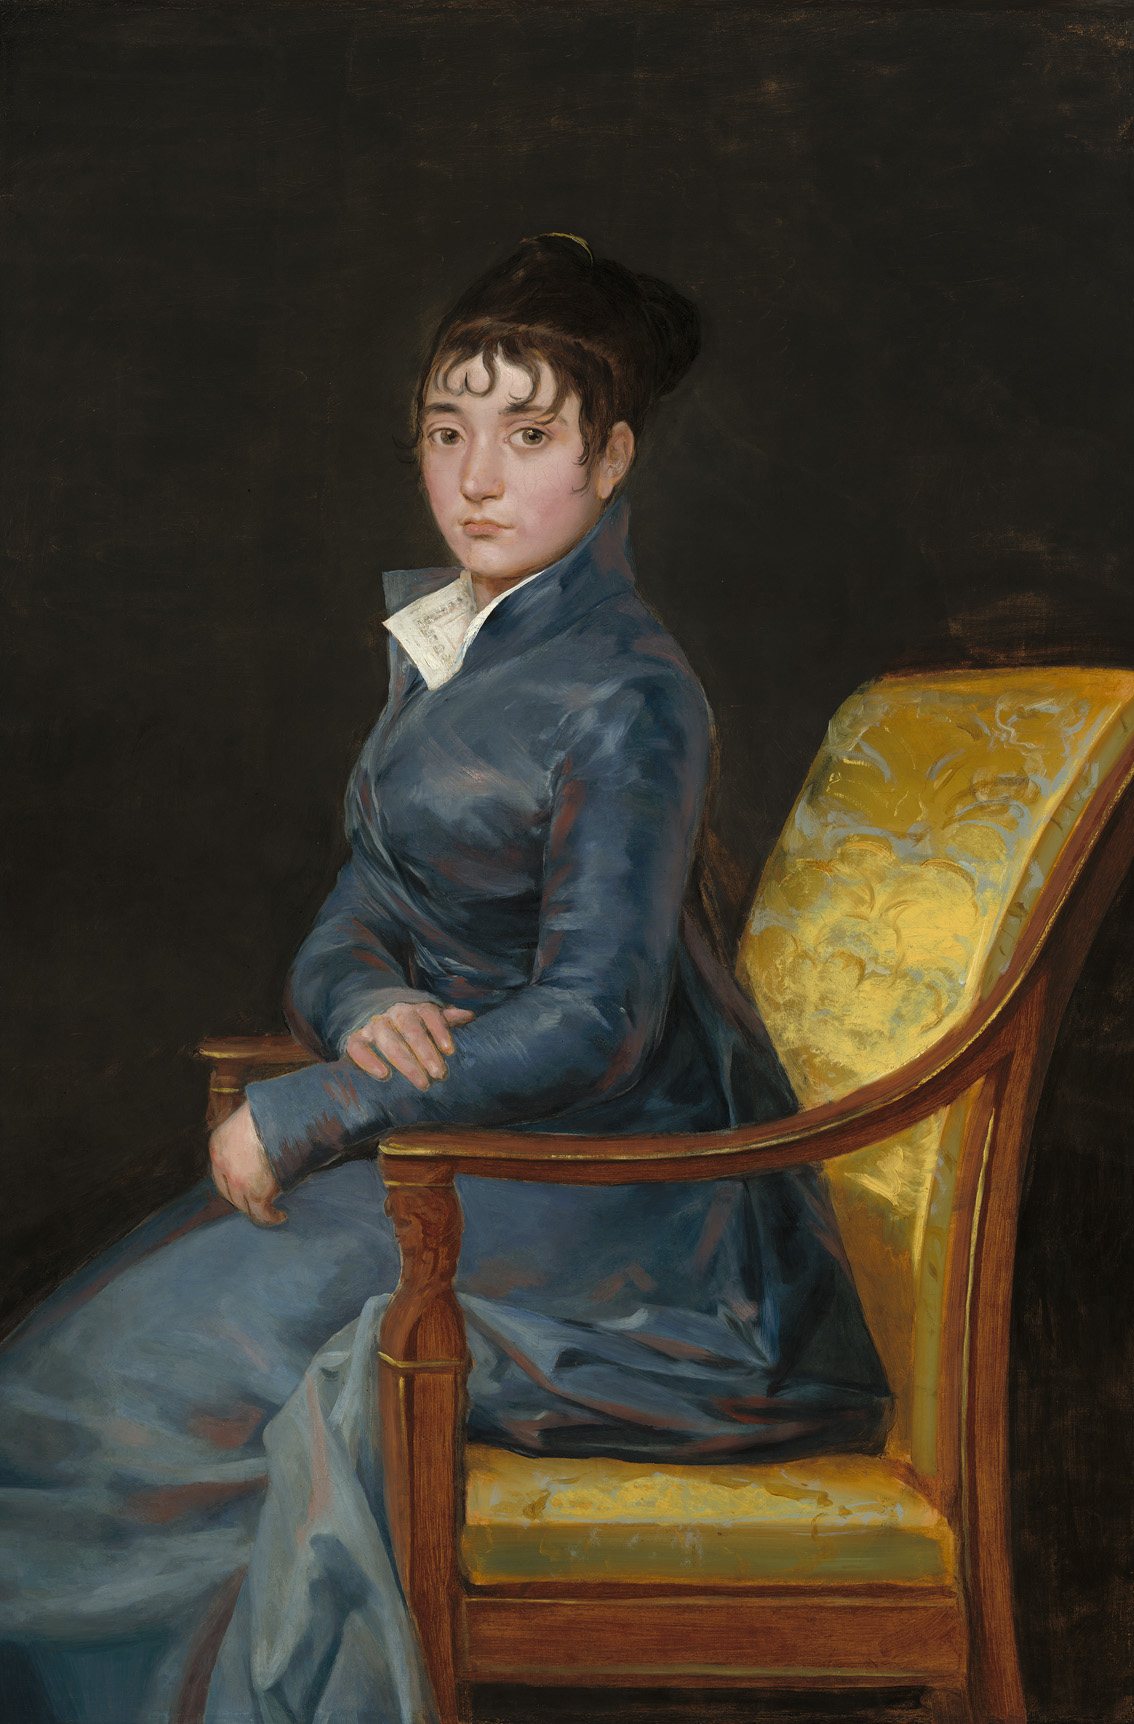 Teresa Luisa de Sureda, h. 1803-1804, oil on canvas, Gift of Mr. and Mrs. P.H.B. Frelinghuysen in memory of her father and mother, Mr. and Mrs. H.O. Havemeyer.